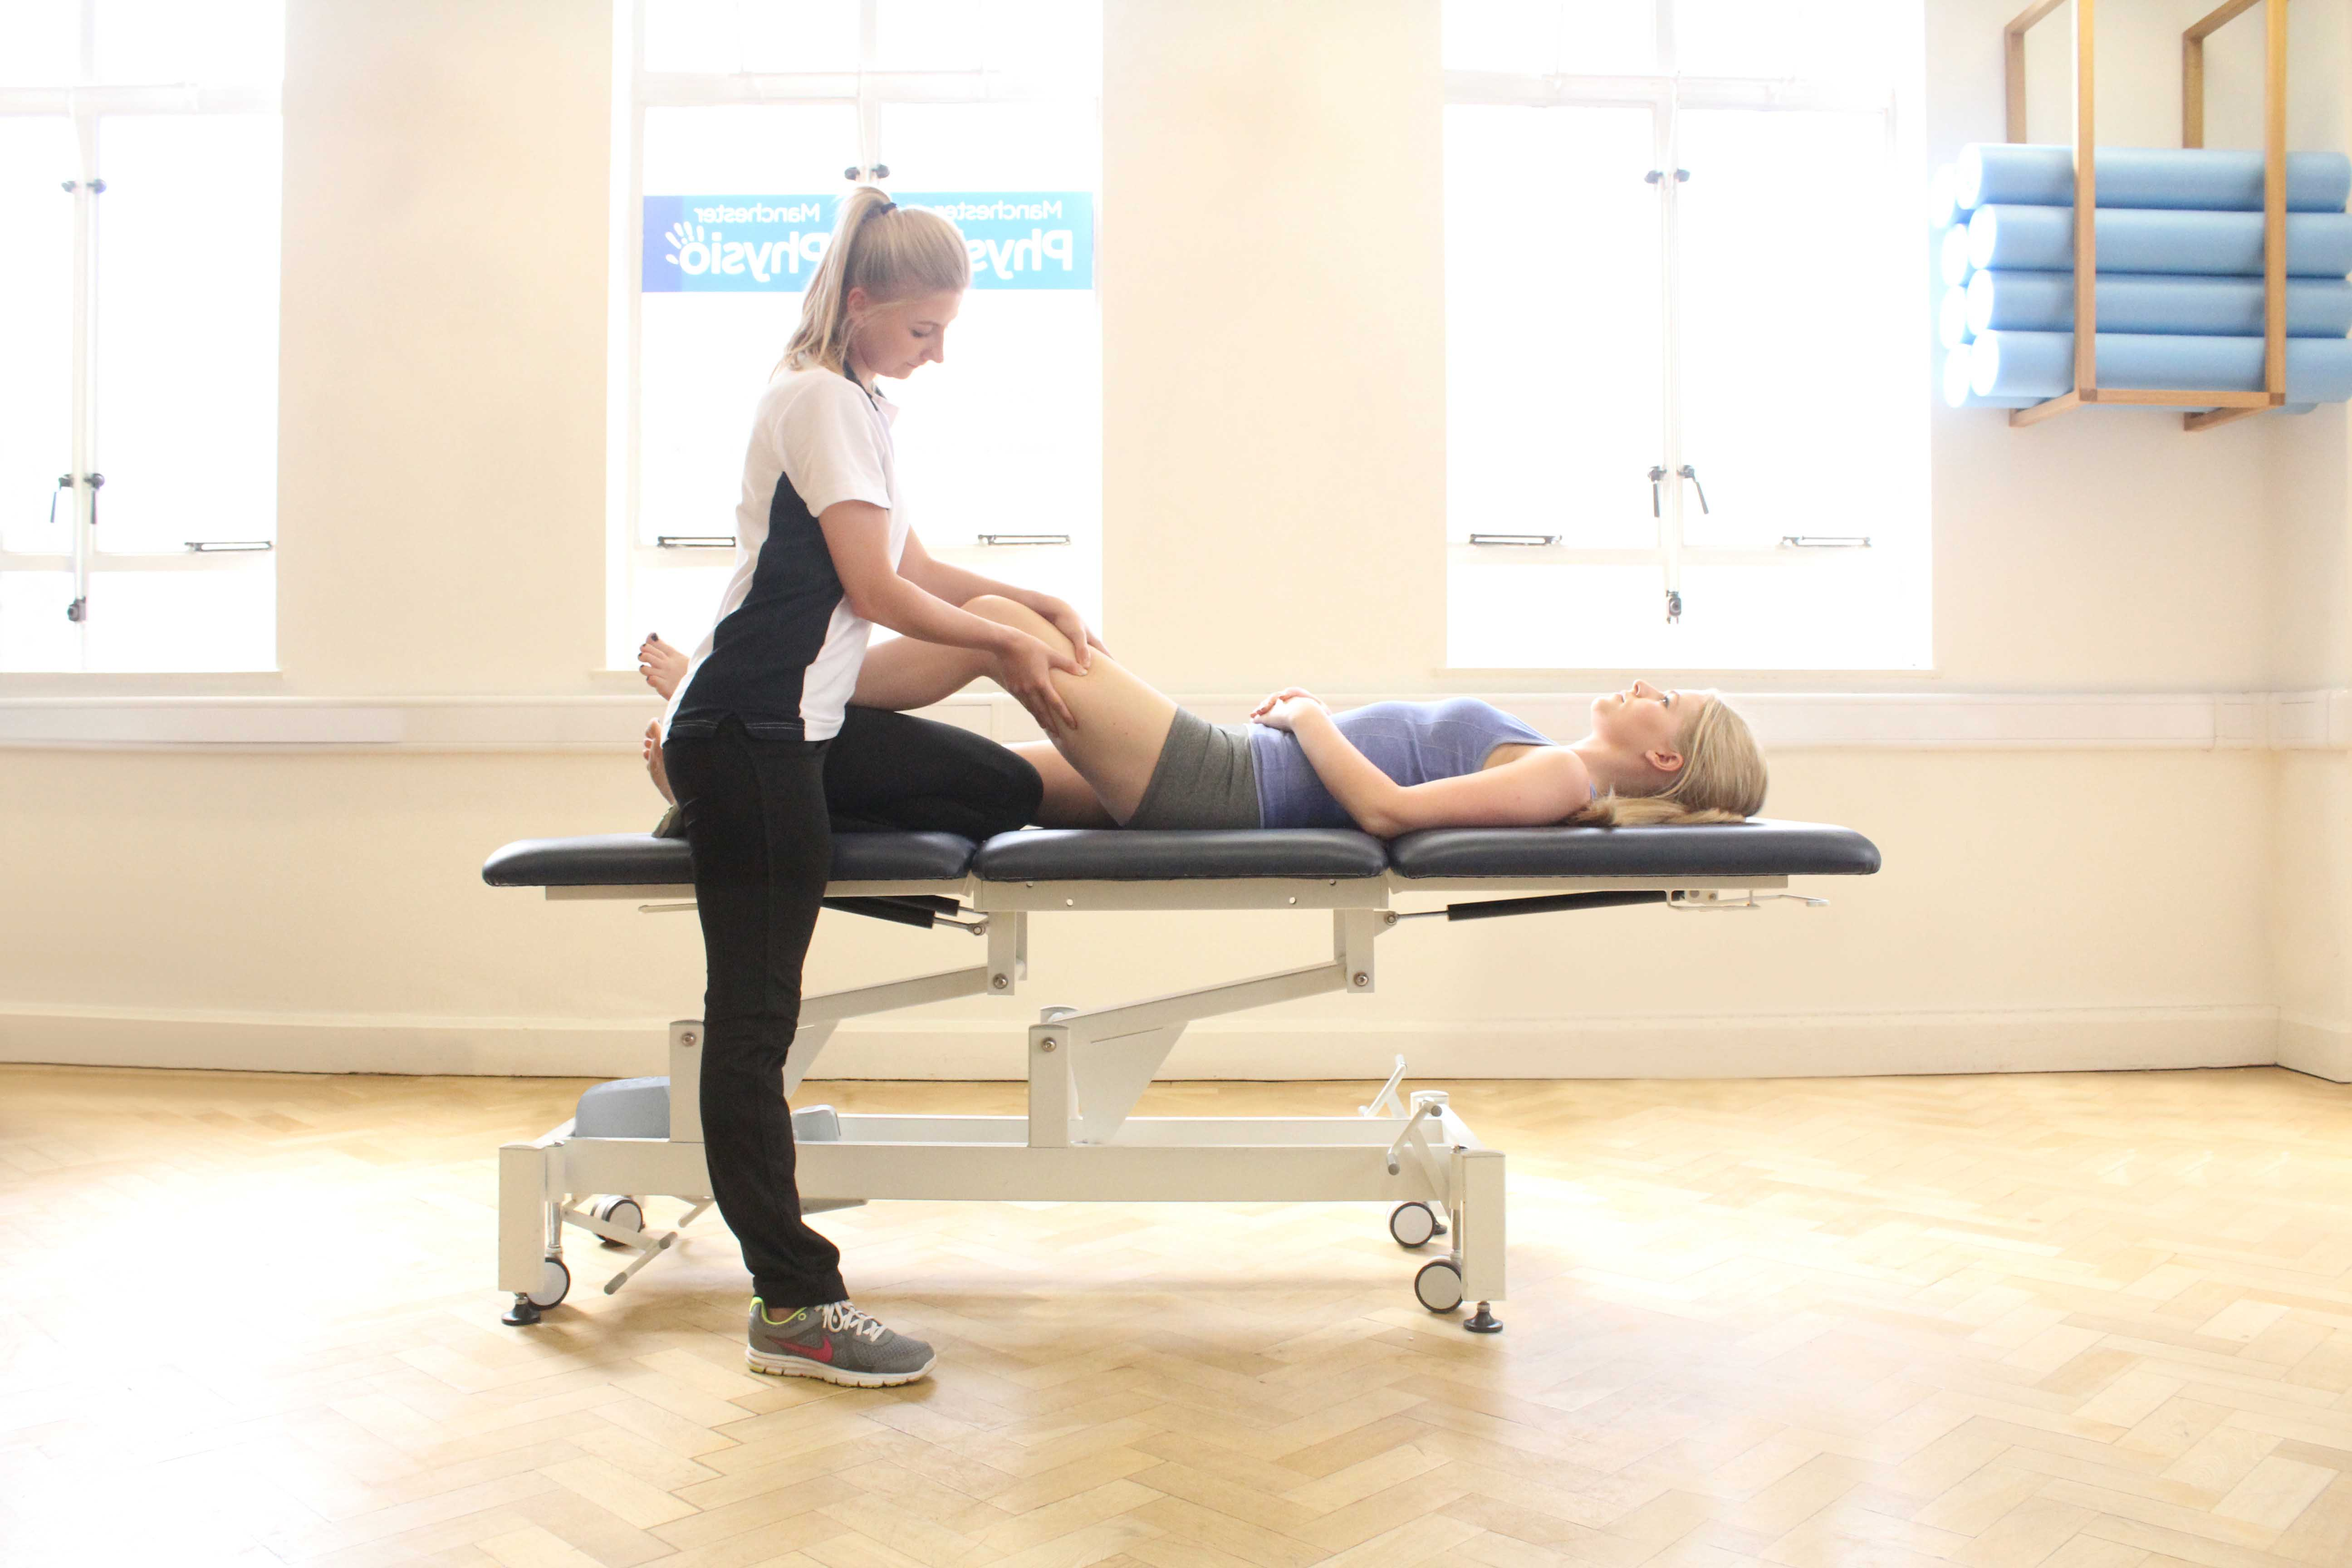 Trigger point massage applied to the quadricep muscles